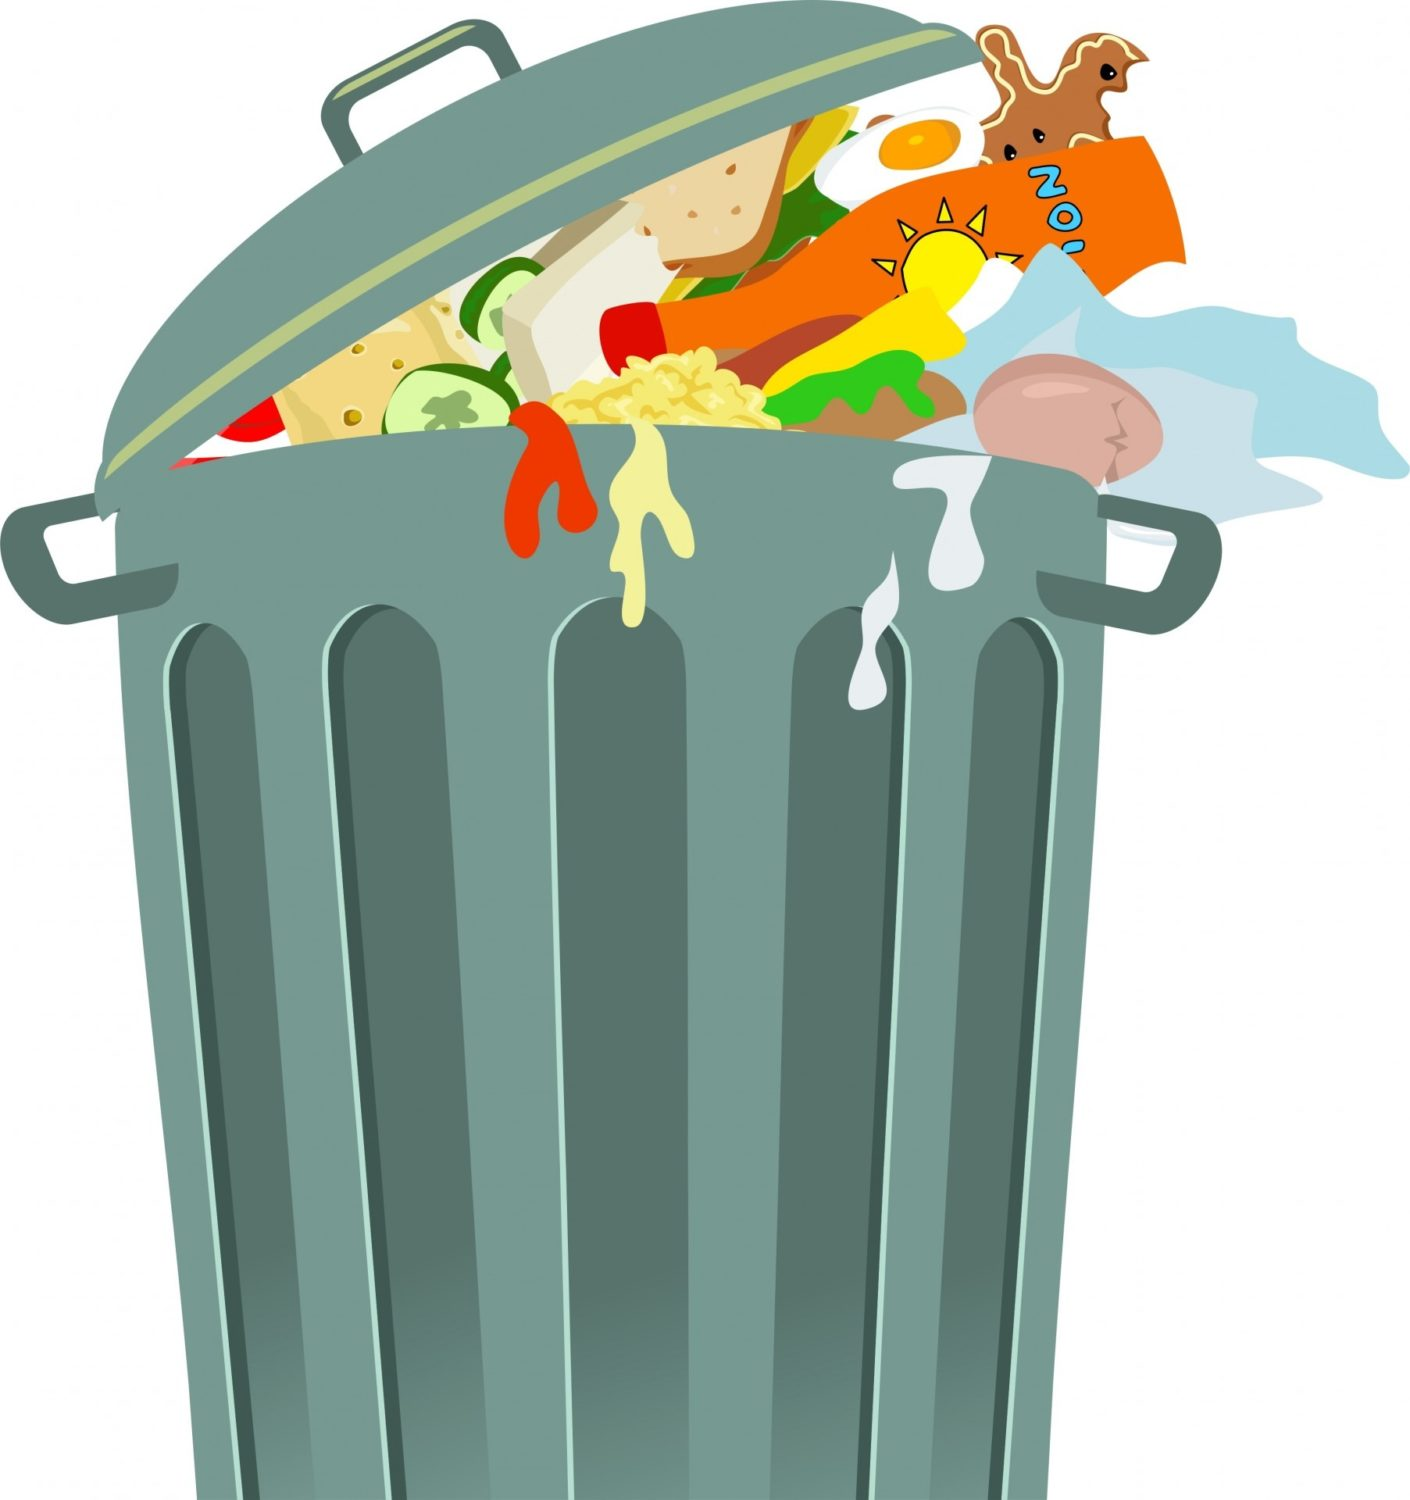 trash can clip art free stock photo public domain pictures within rh healthyjaime com trash can clip art free trash can blue clipart